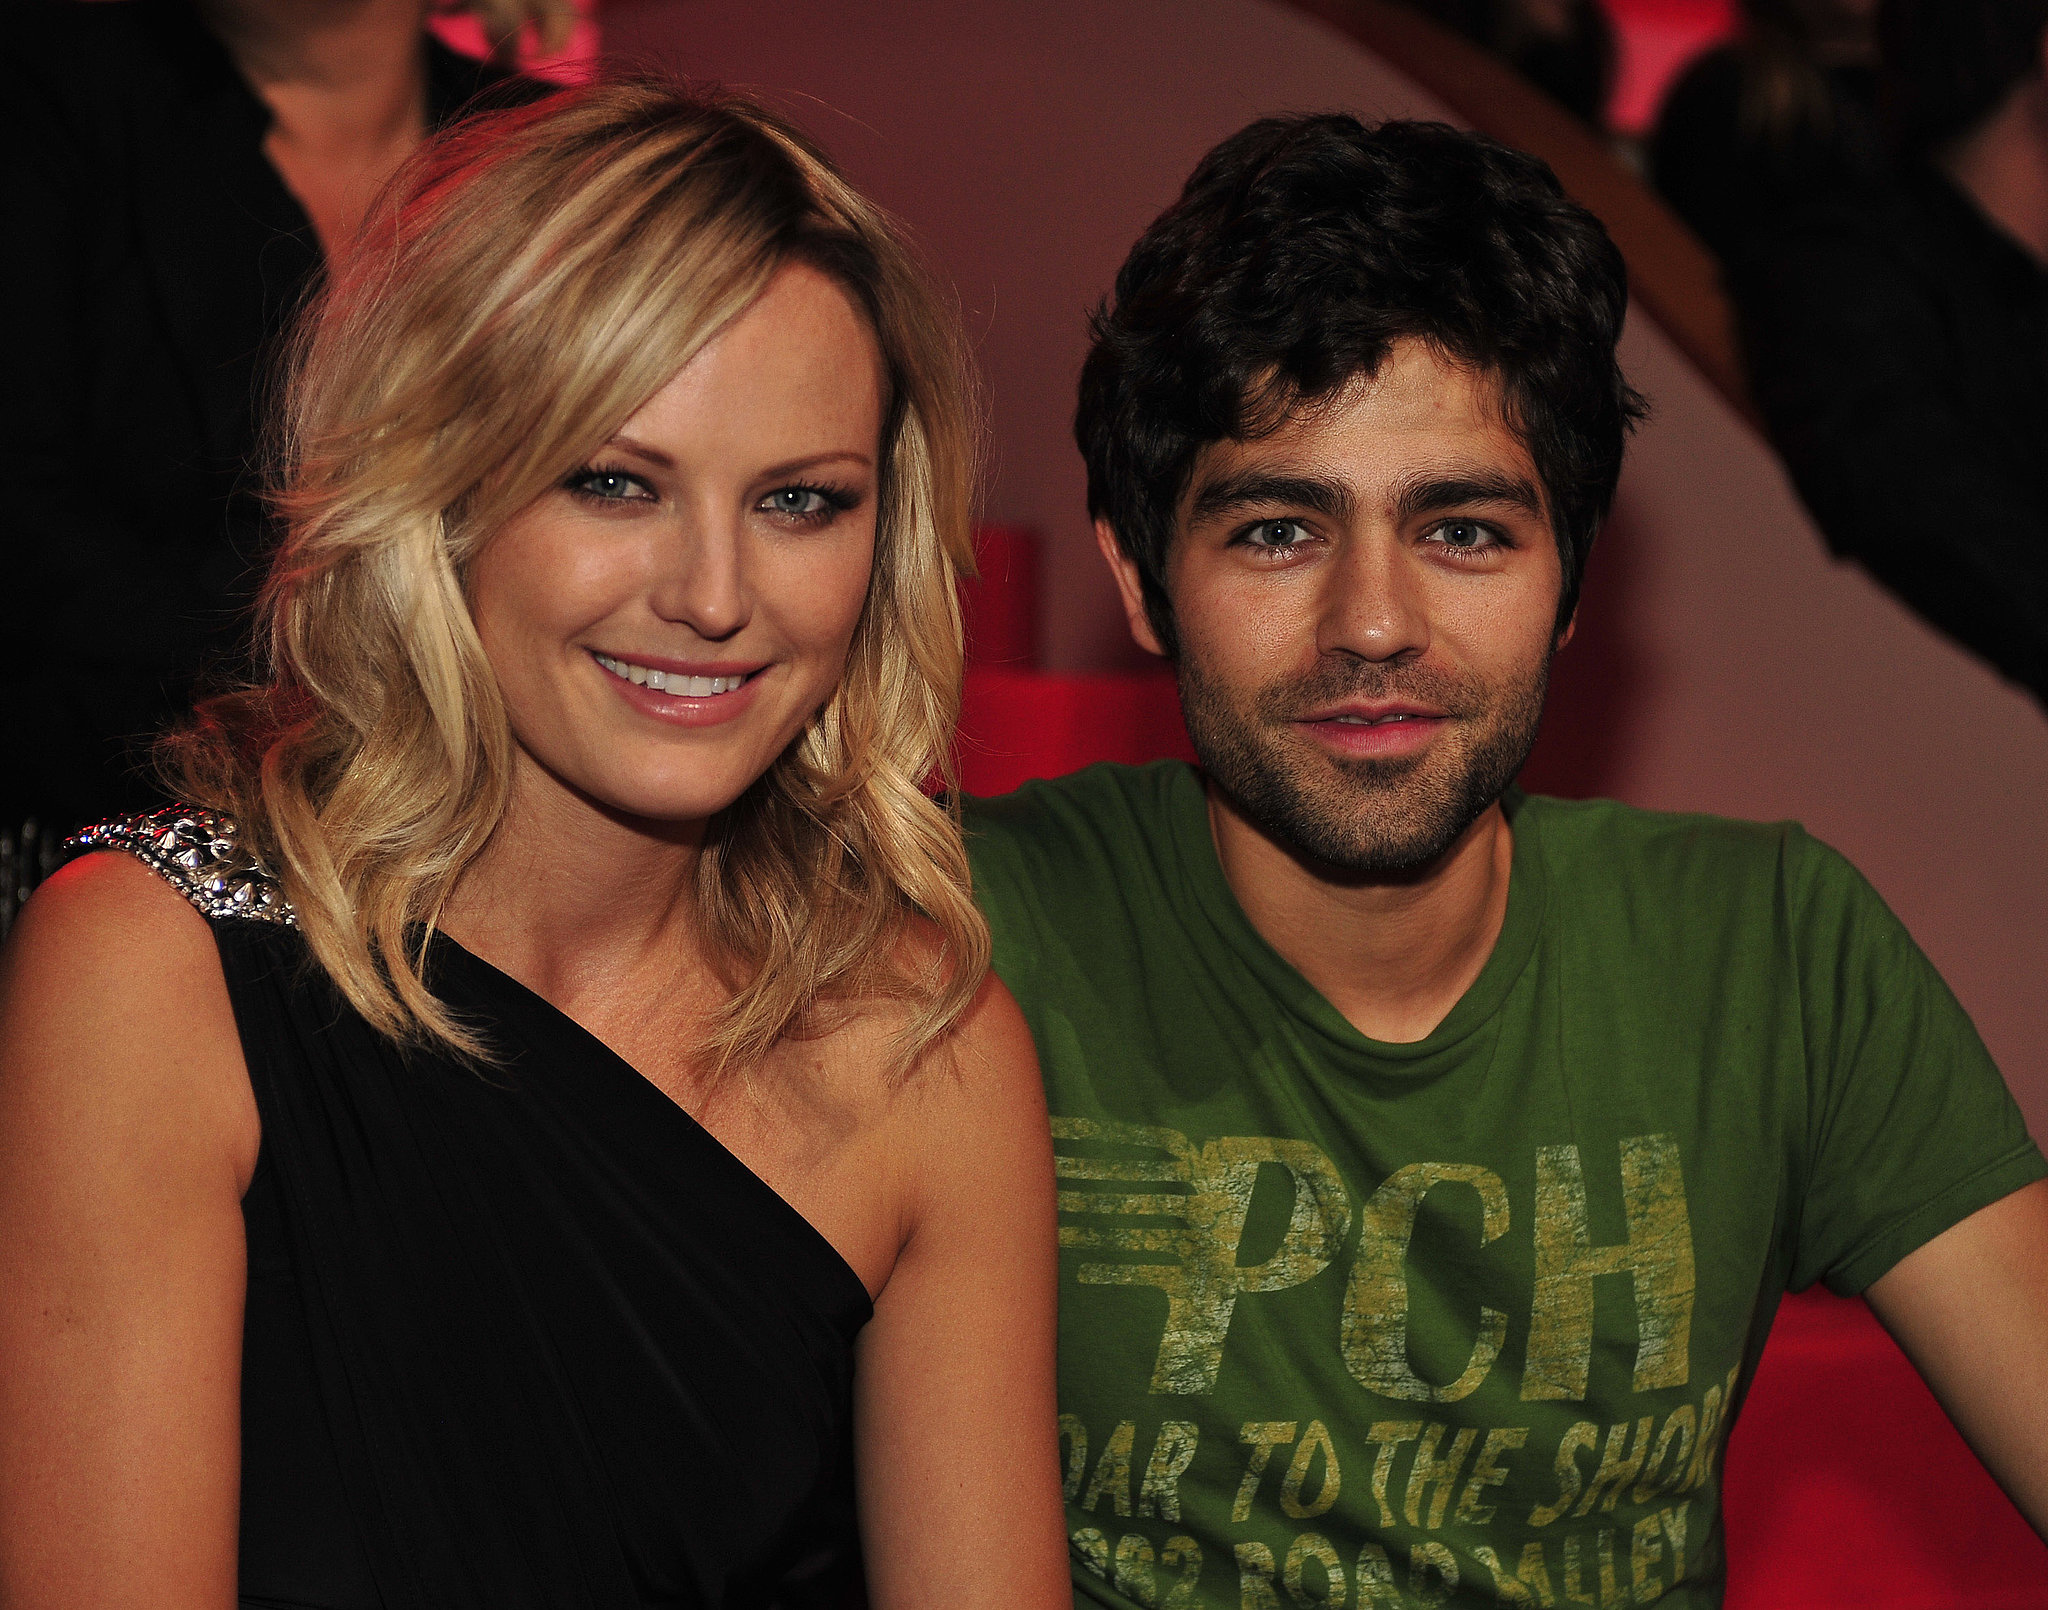 Malin Akerman and Adrian Grenier hung out together at the 2010 show.